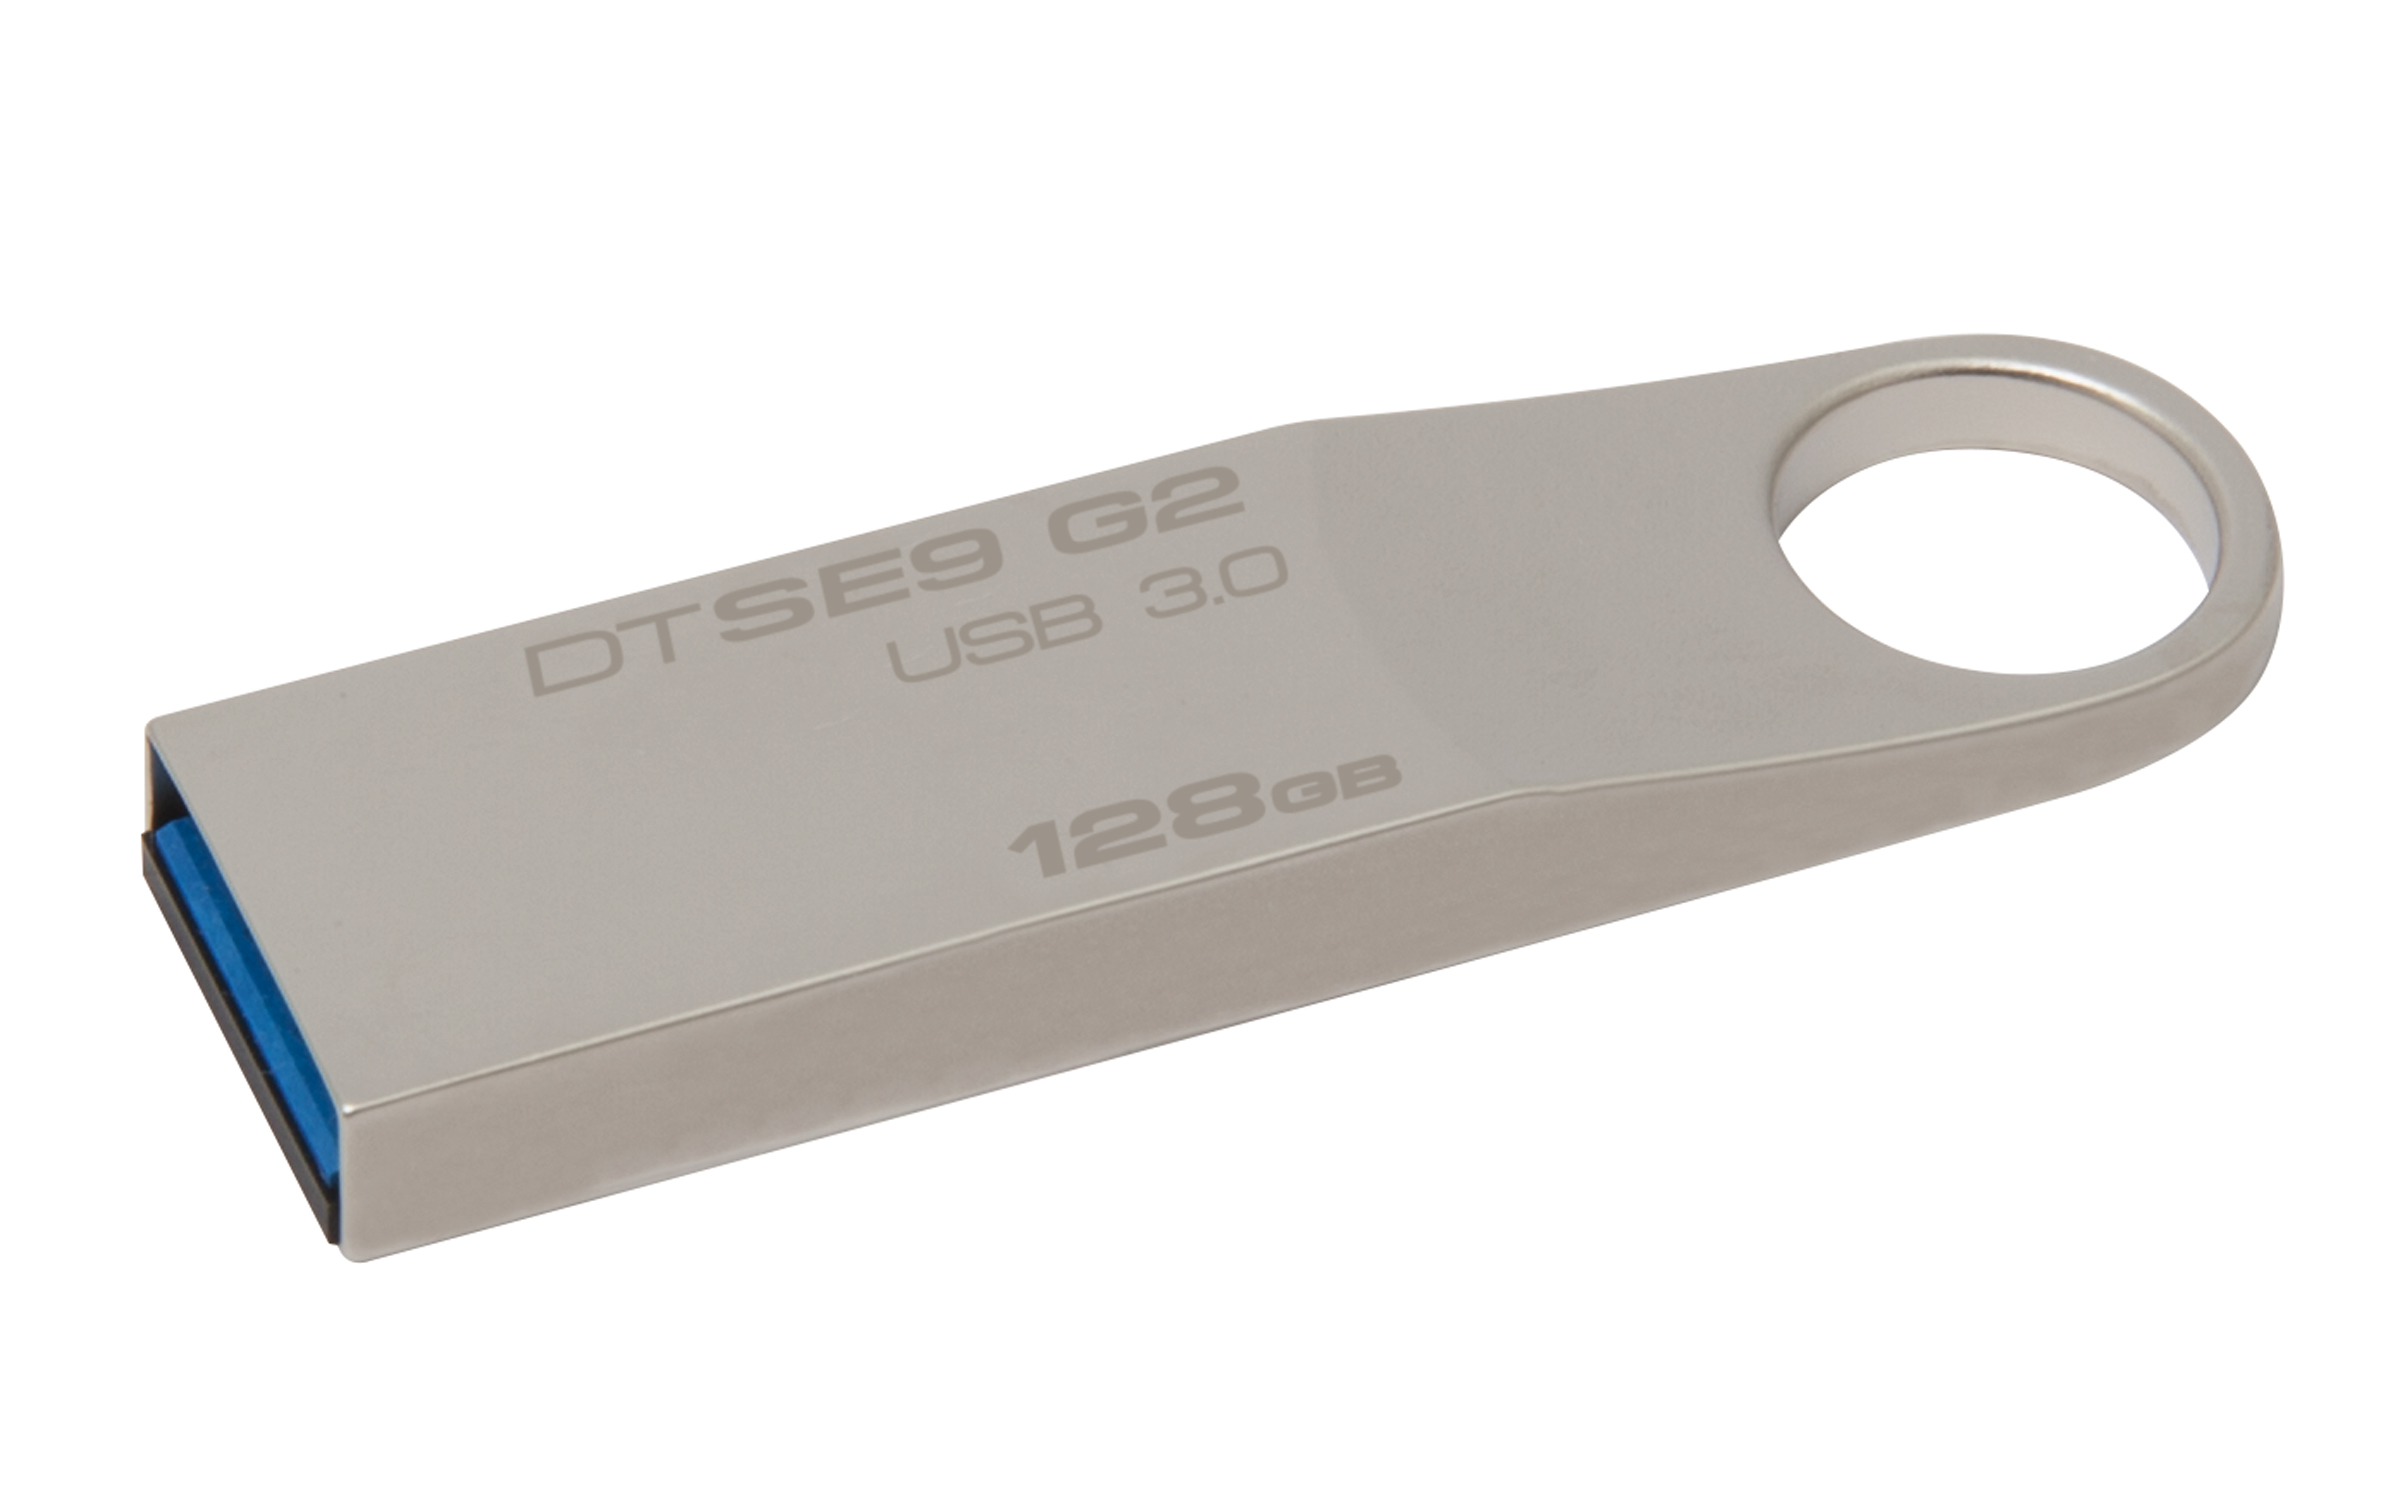 Datatraveler se9 g2 3. 0 usb 8gb-128gb | kingston.